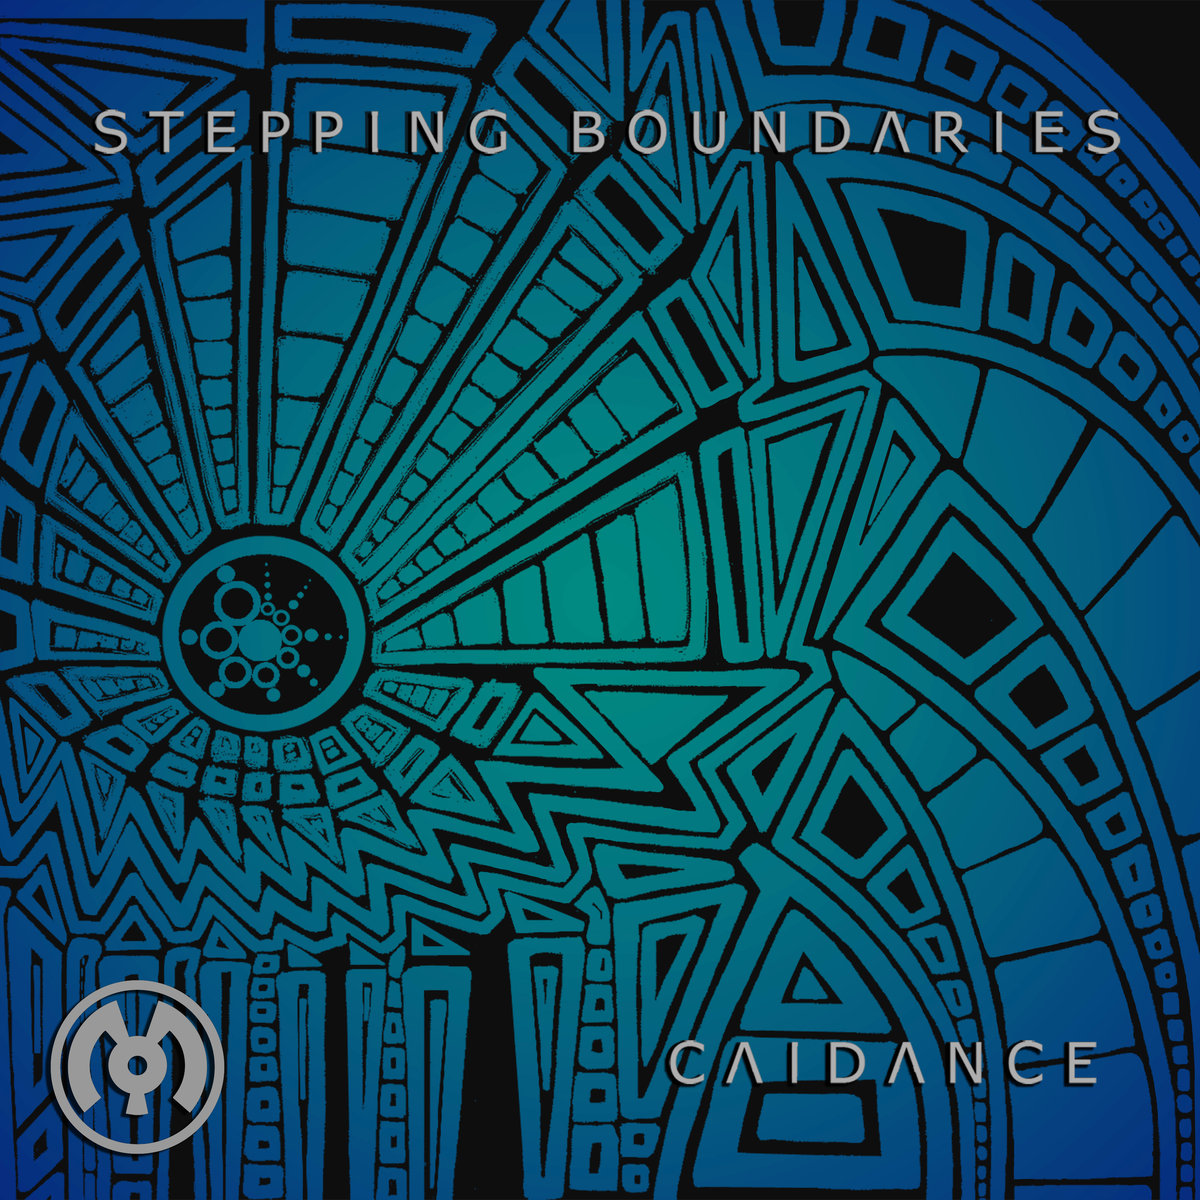 Caidance - I Can See My Breath @ 'Stepping Boundaries' album (electronic, dubstep)